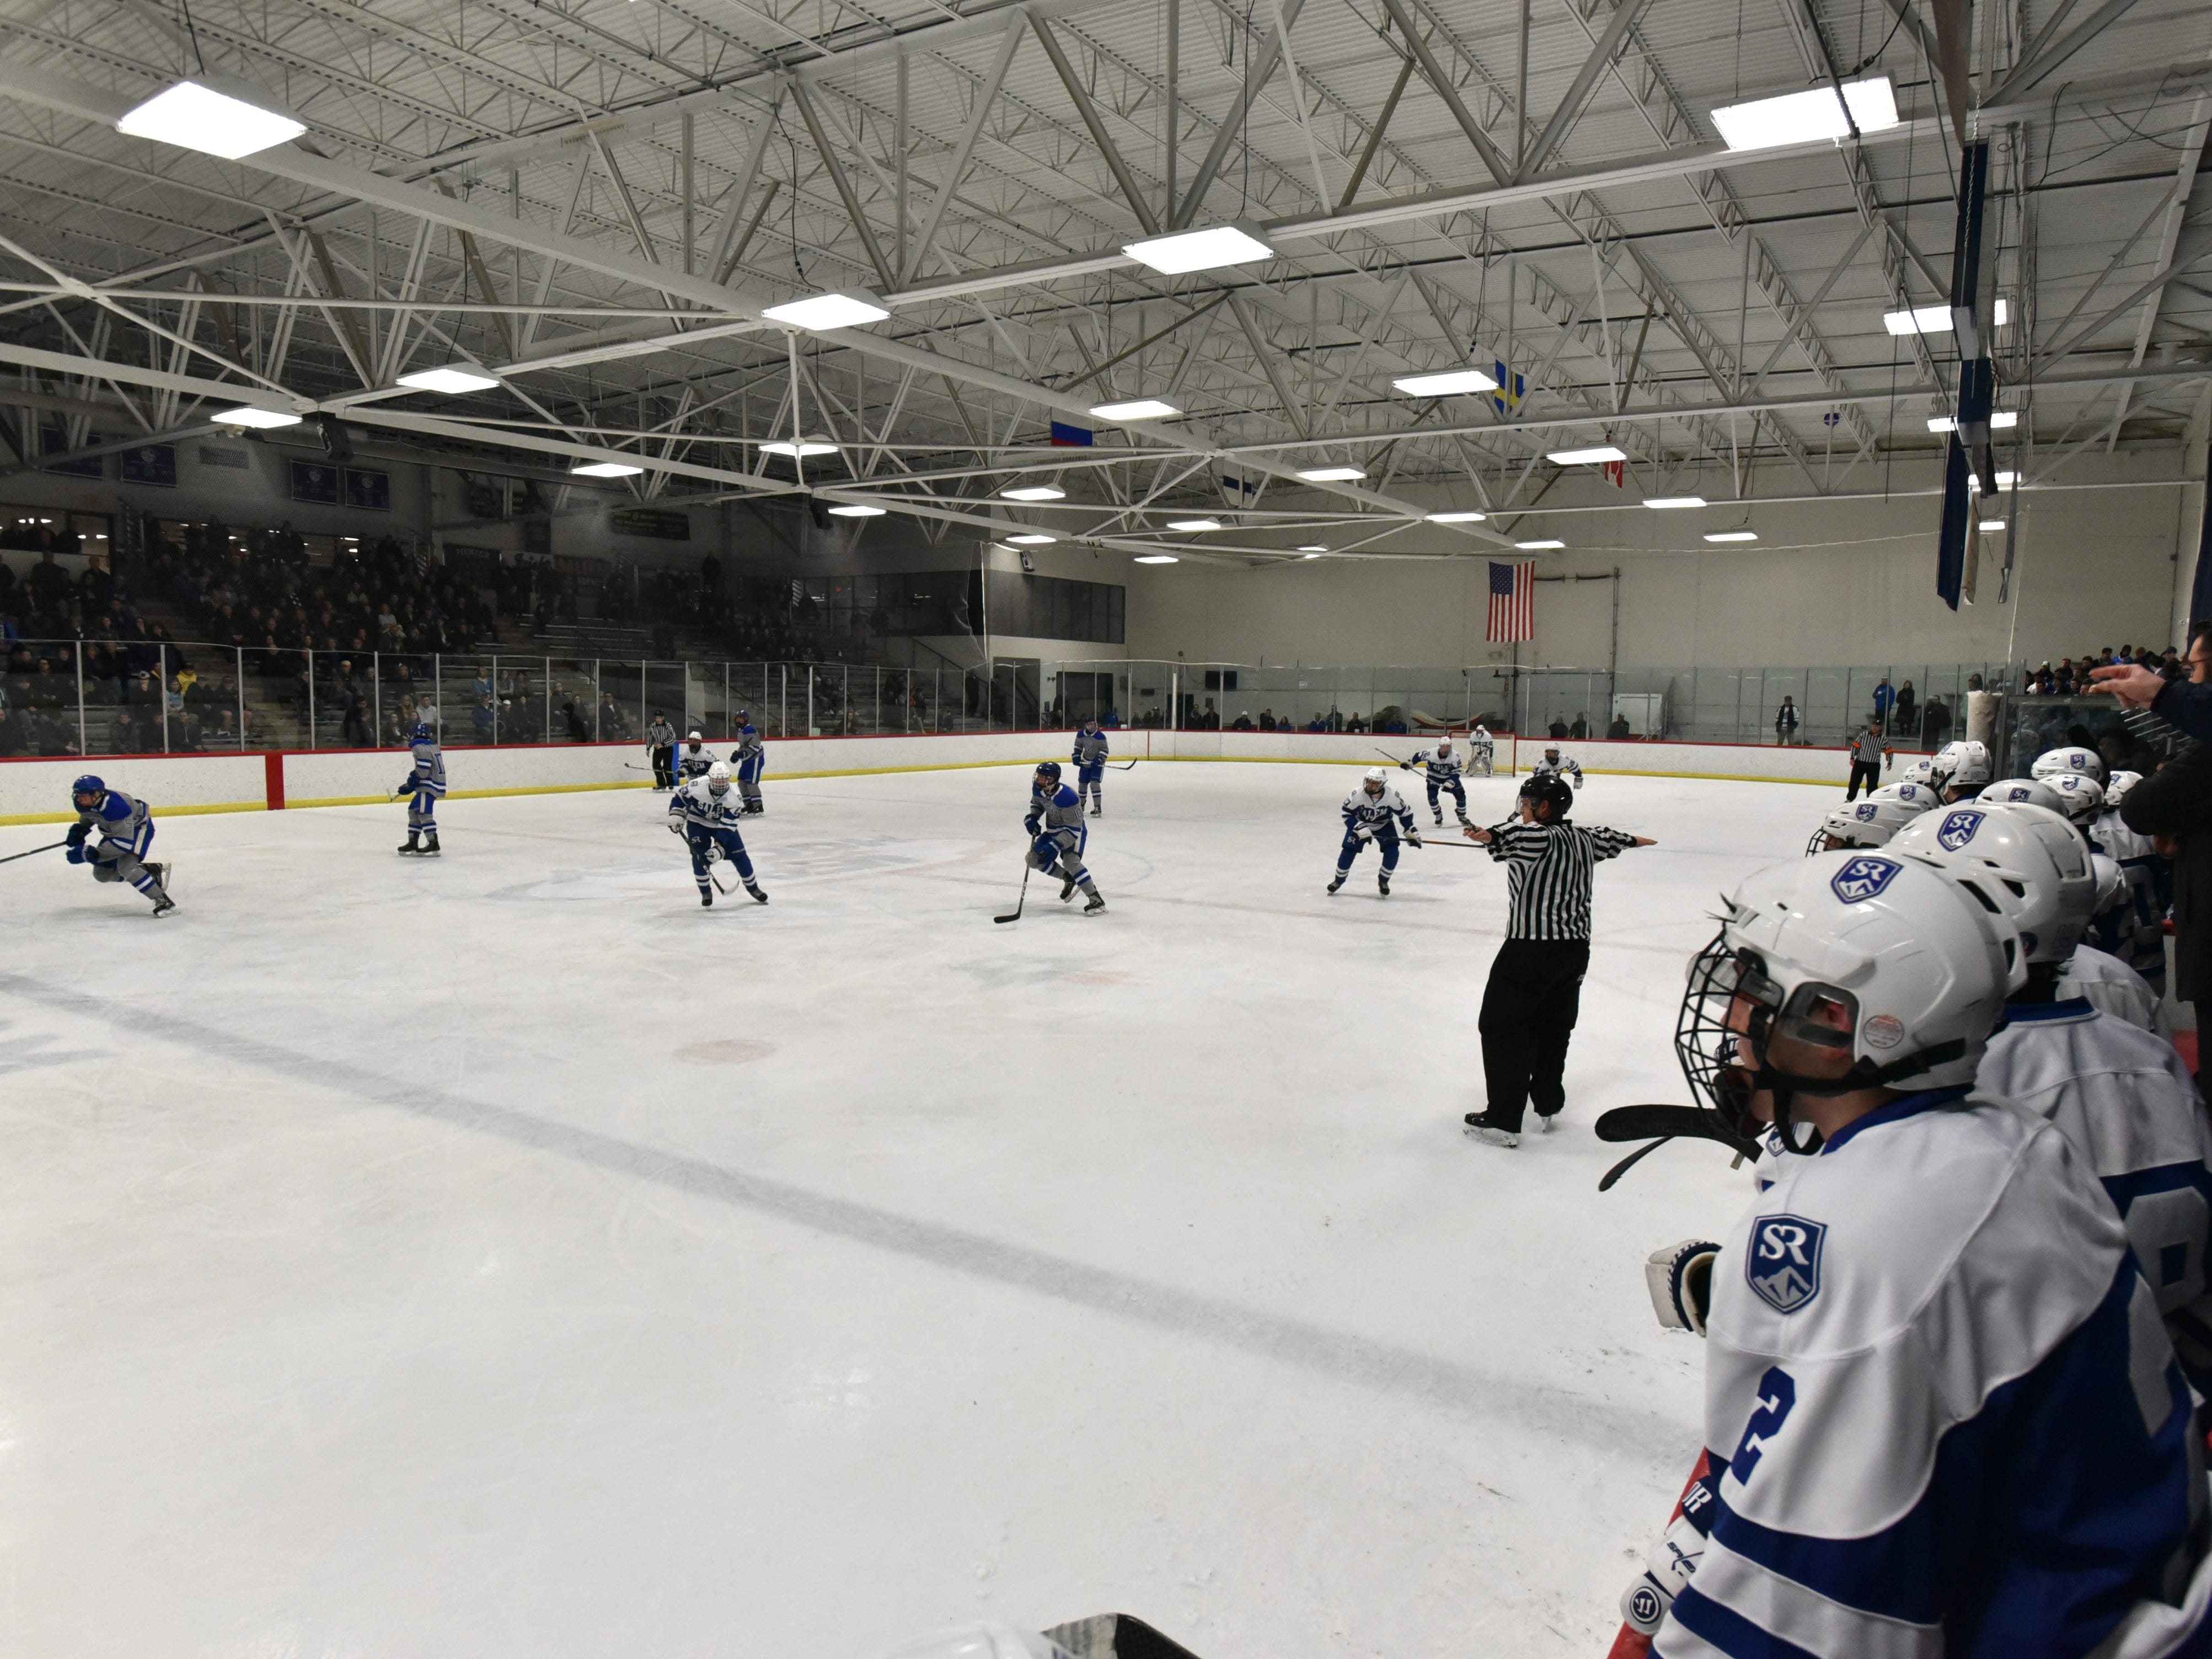 The MHSAA quarterfinal was played at the Ann Arbor IceCube.